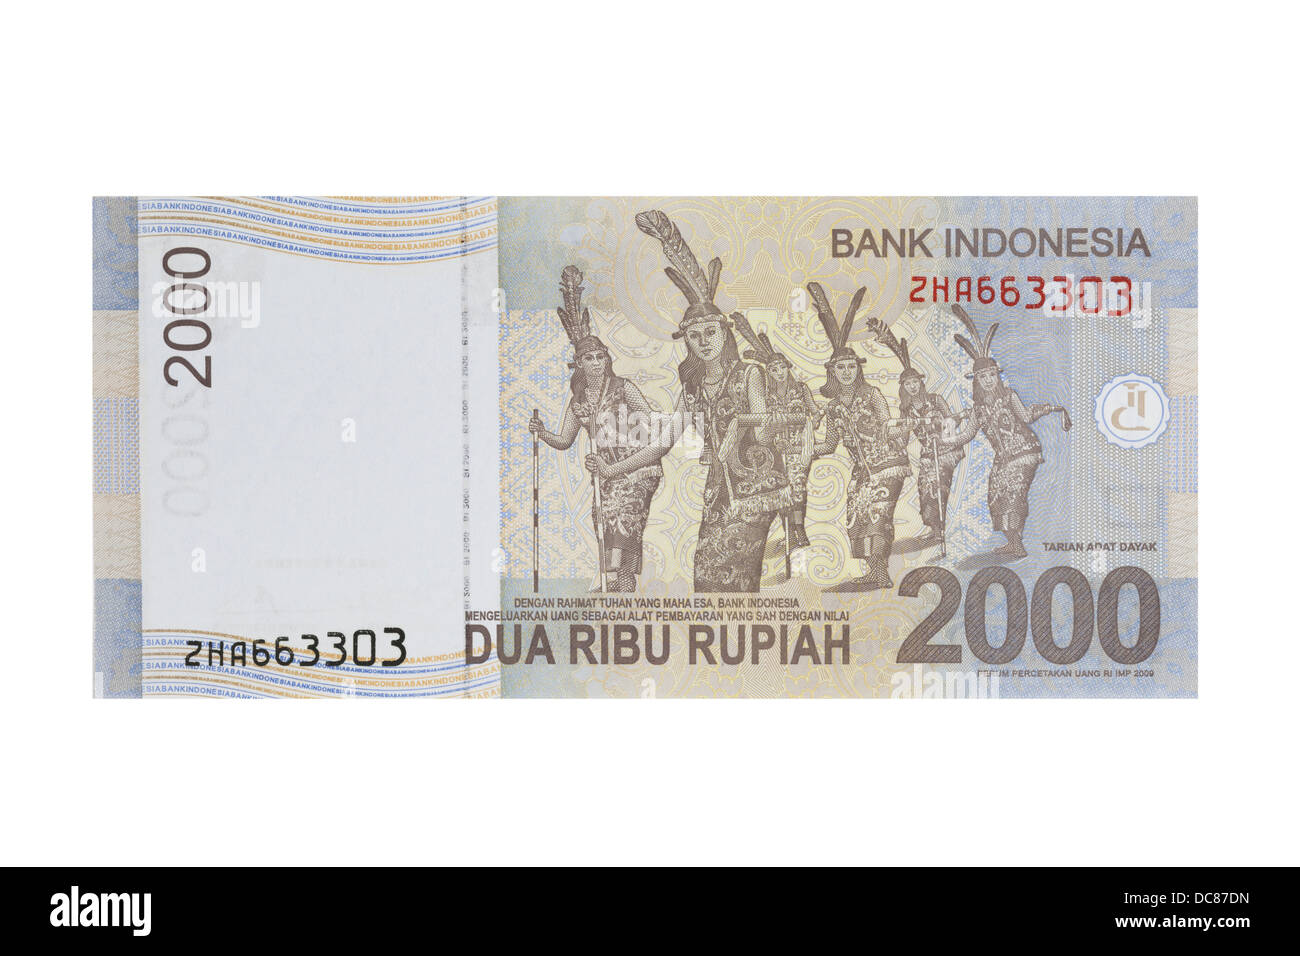 Indonesian two thousand rupiah note on a white background - Stock Image